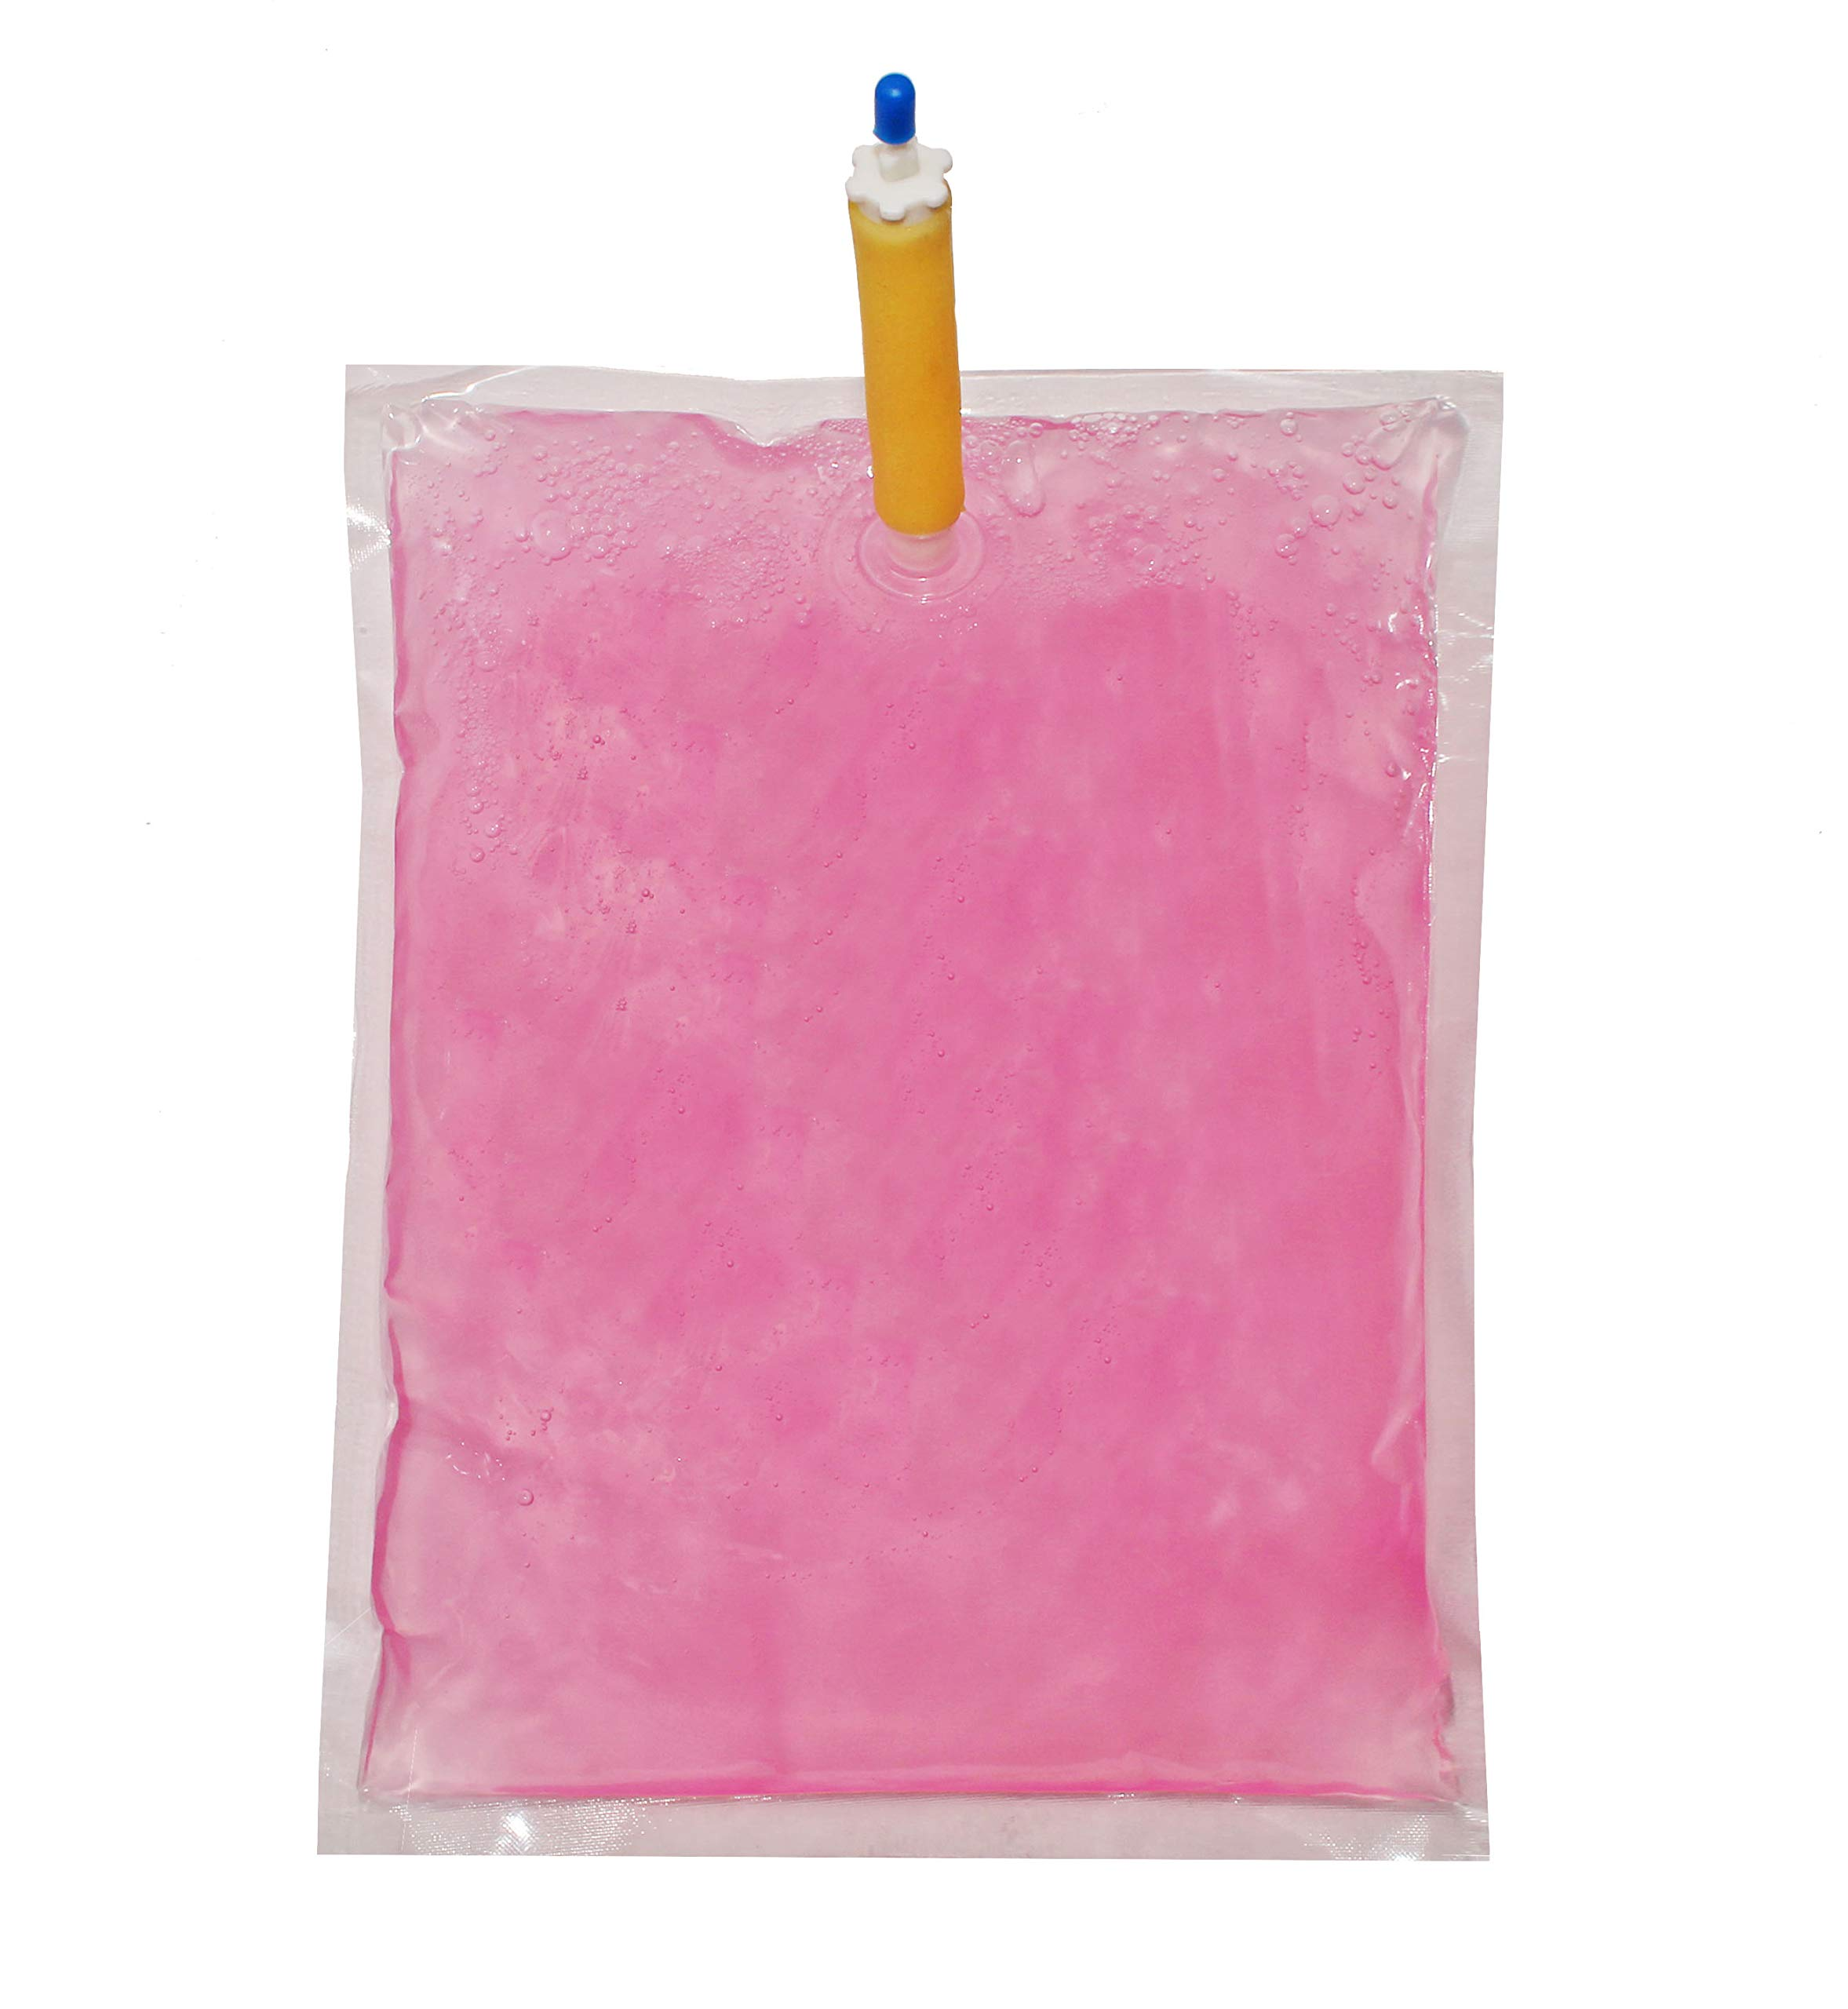 LifeSupplyUSA Case of 12 Pink Pearlized Liquid Lotion Hand Wash Soap 800-ml Dispenser Refill Pouch Bags